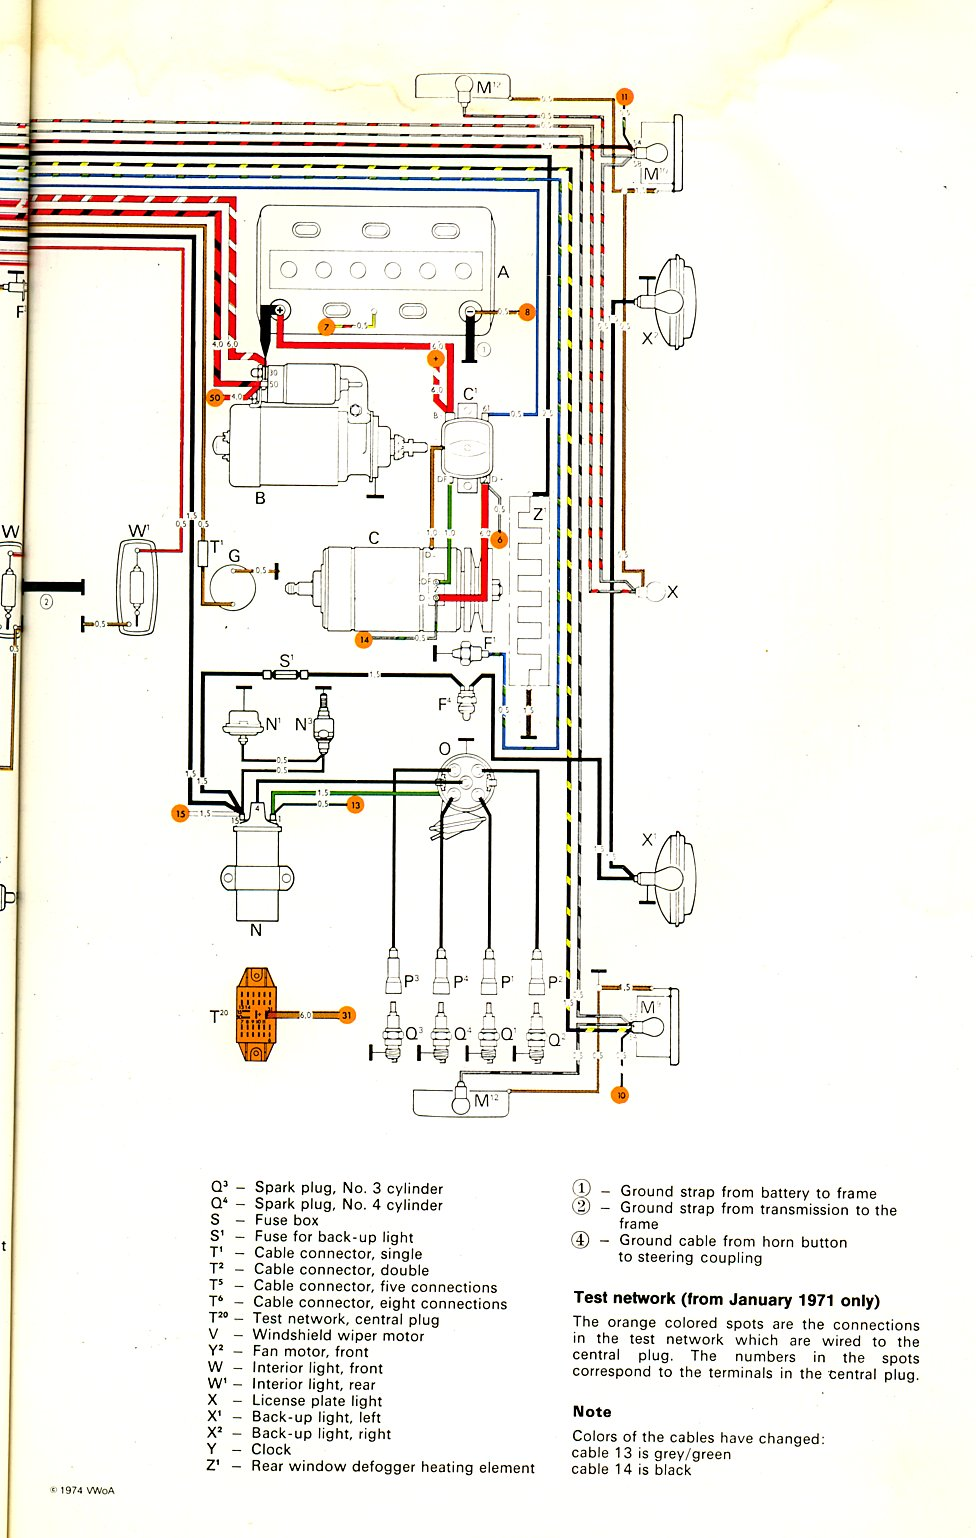 baybus_71b thesamba com type 2 wiring diagrams 1973 super beetle fuse box diagram at mr168.co